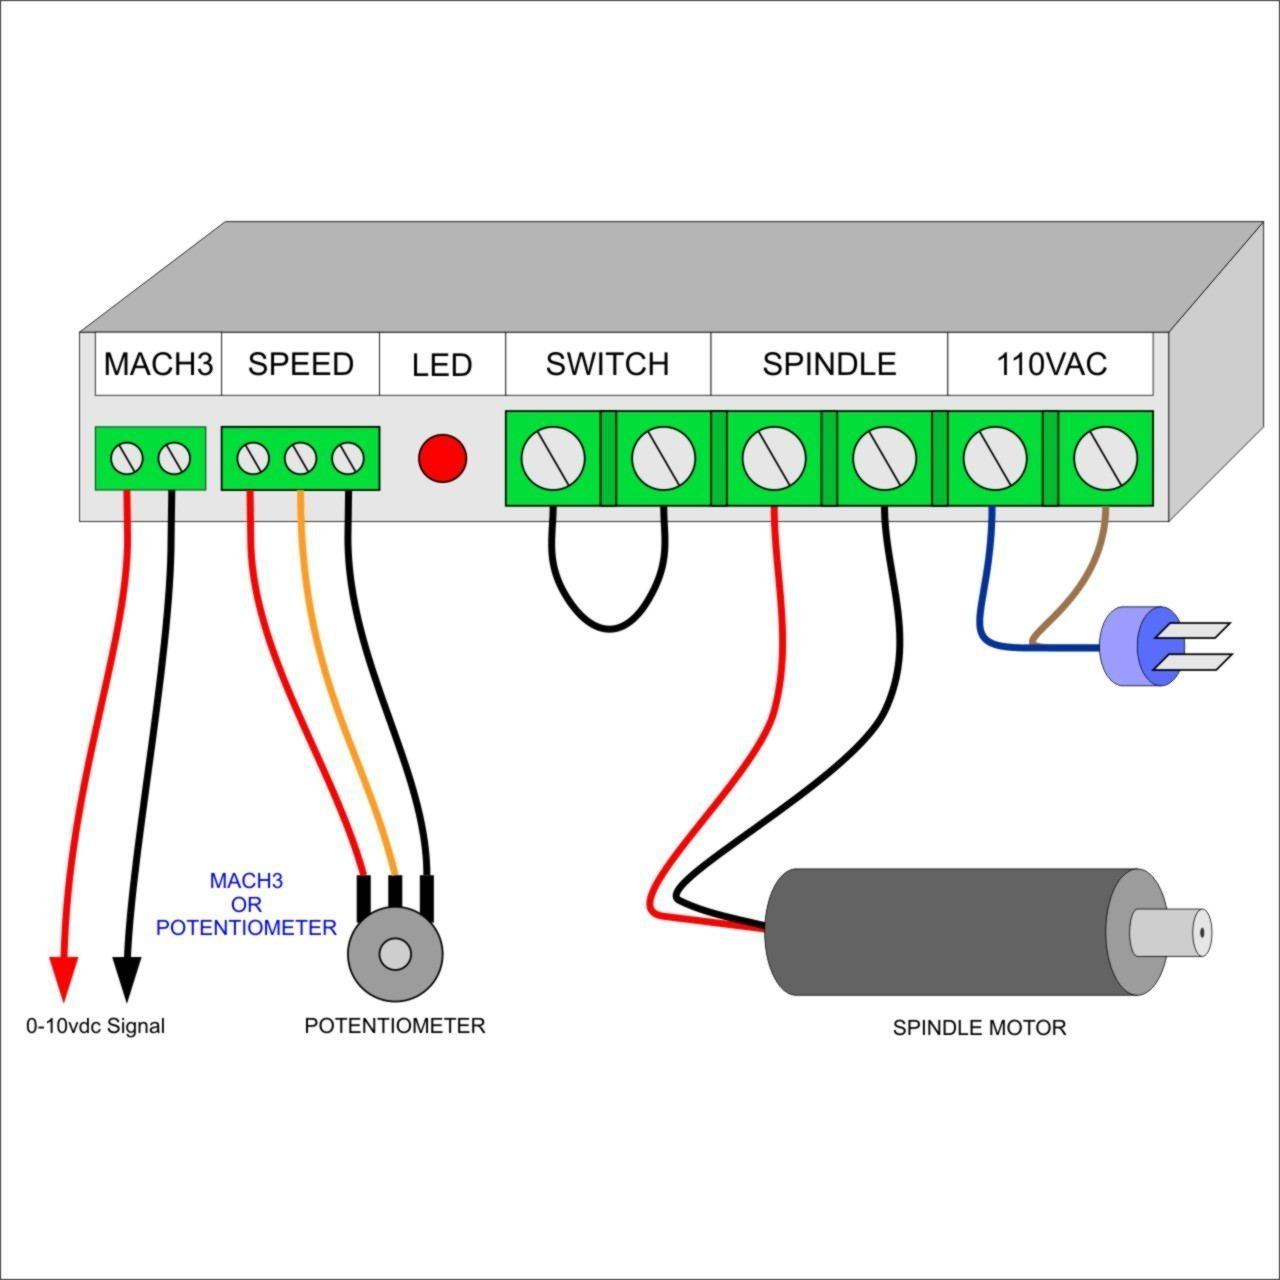 0 10v analog signal wiring cell respiration cycle diagram how to wire 500 w chinese spindle with its controller